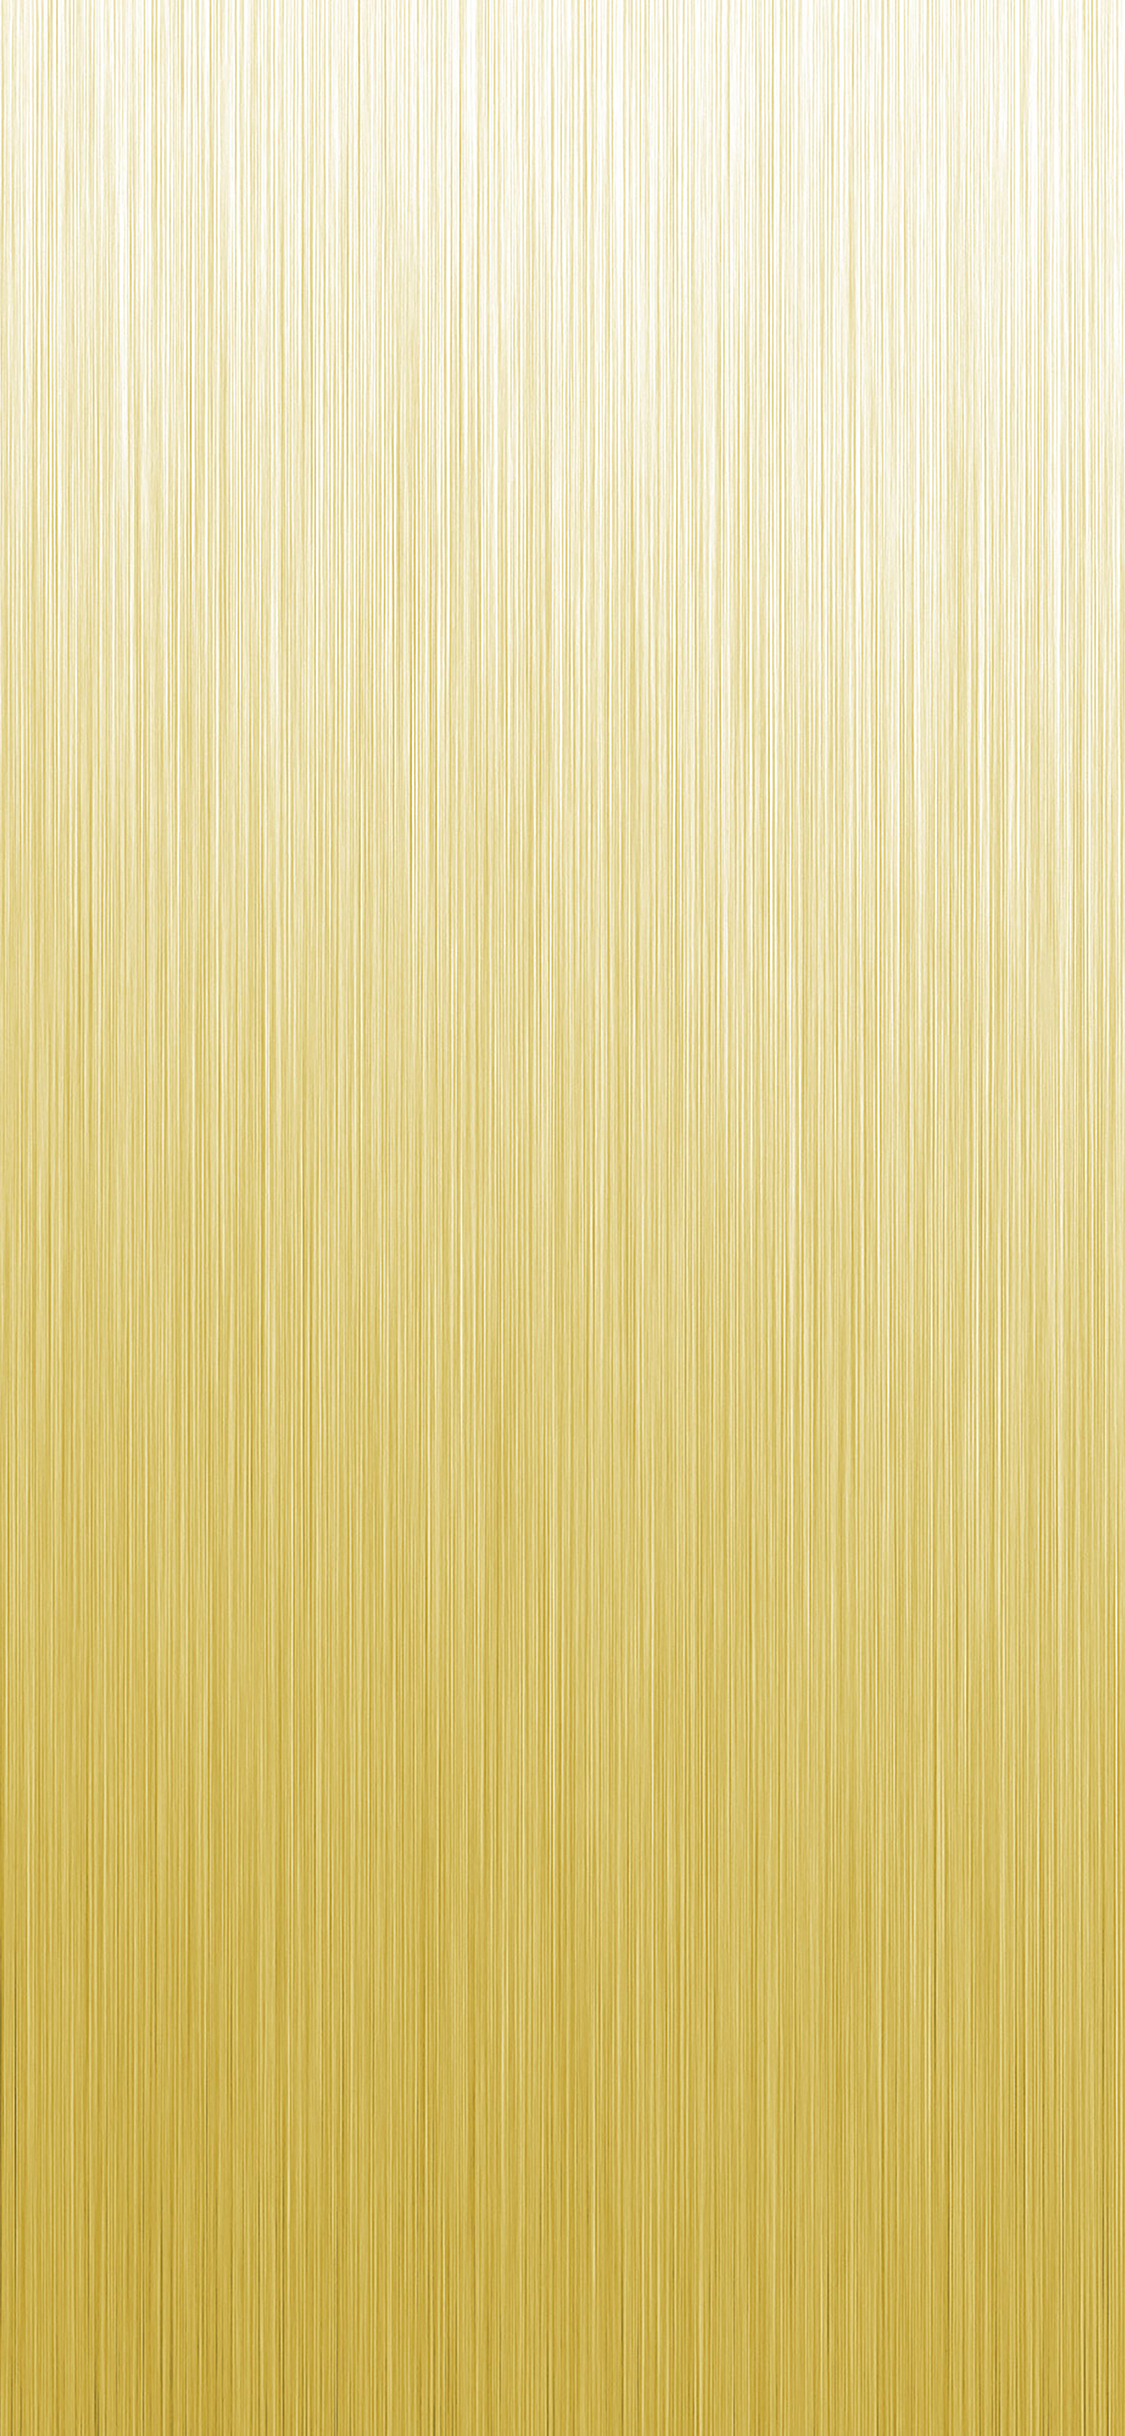 iPhoneXpapers.com-Apple-iPhone-wallpaper-va02-gold-rush-minimal-texture